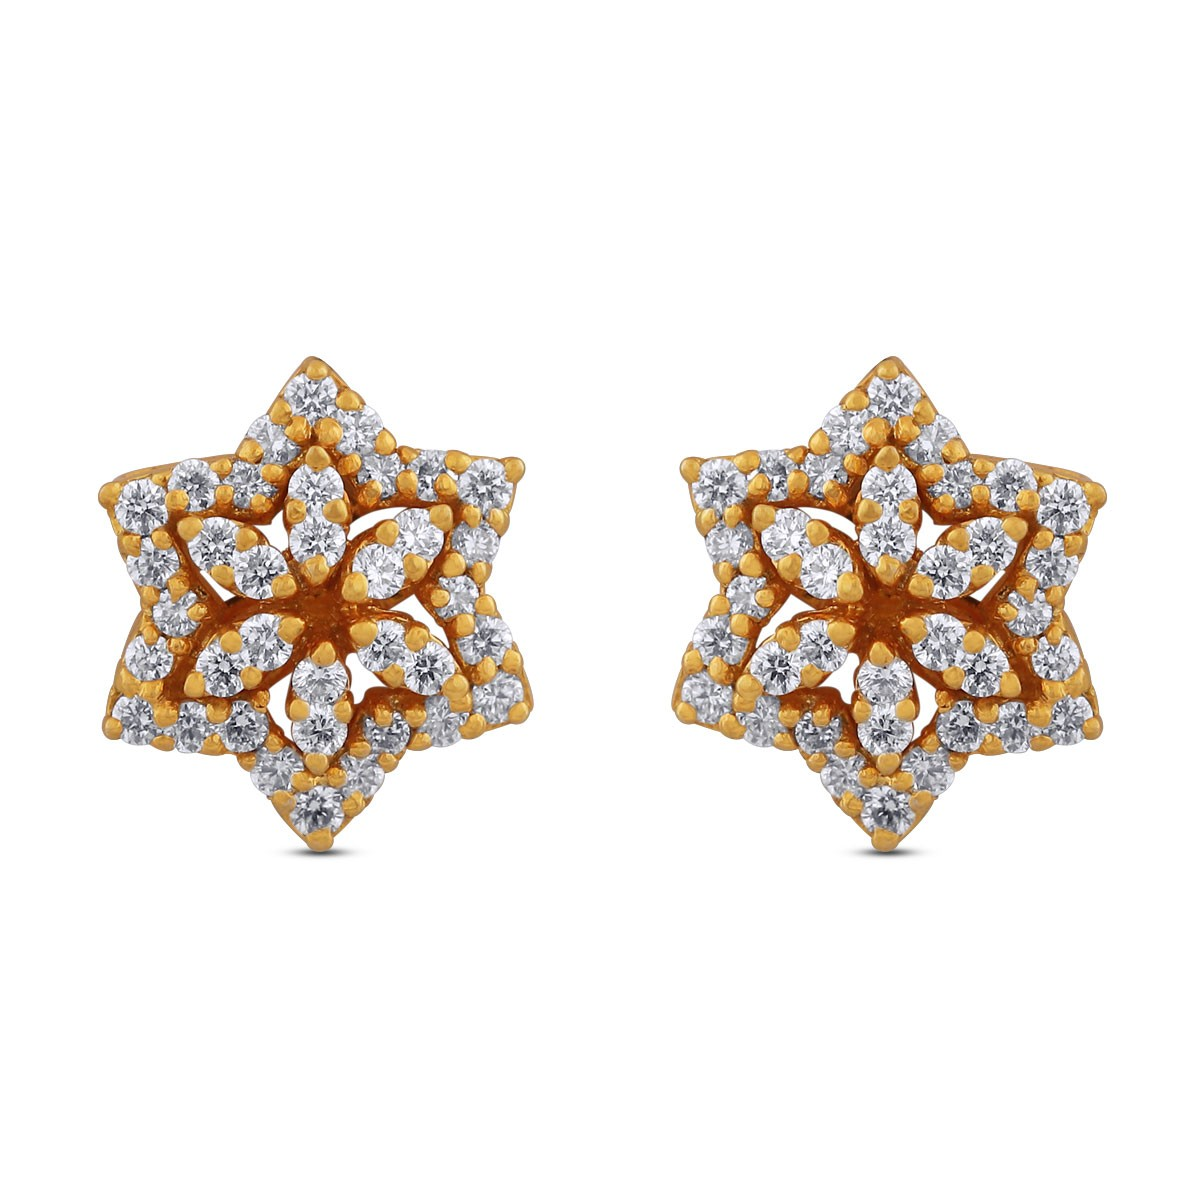 Nora Yellow Gold Diamond Stud Earrings